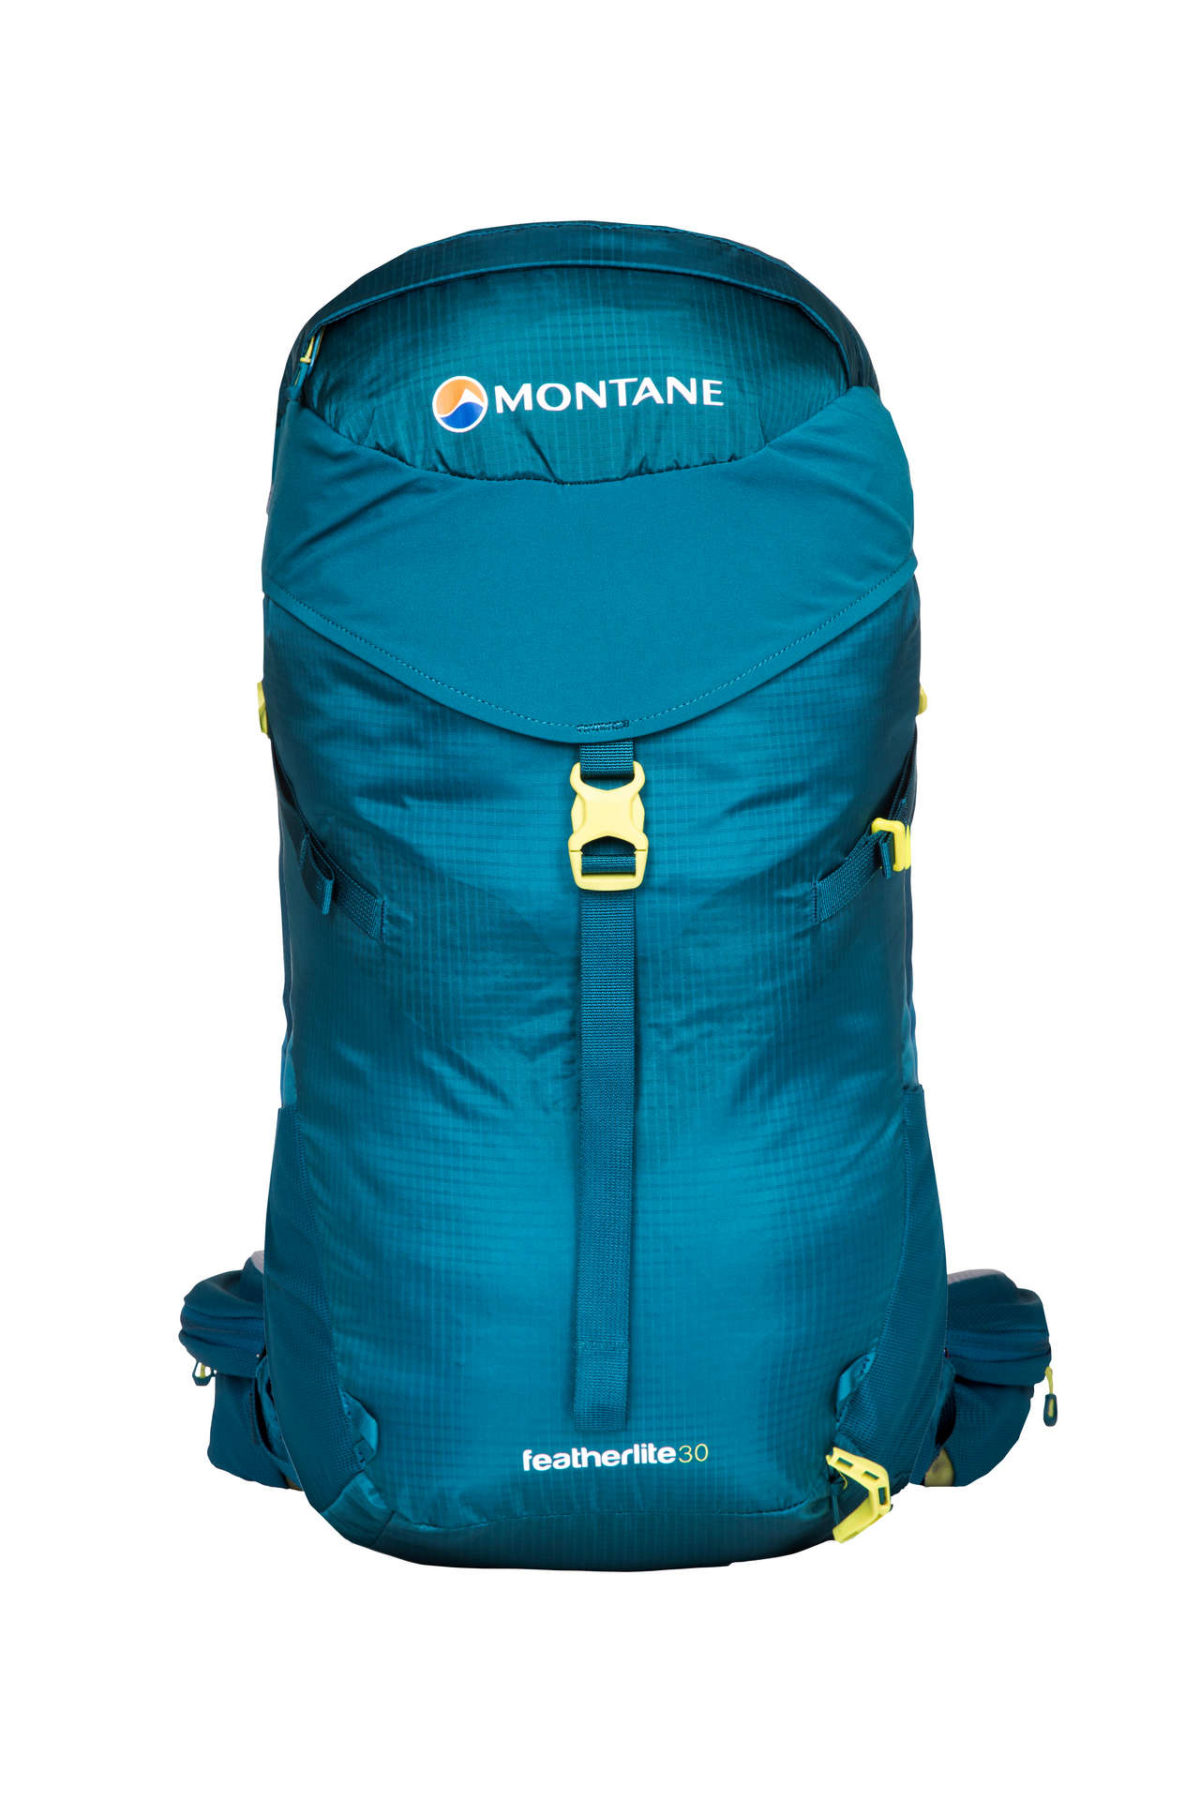 Featherlite 30 fastpacking backpack from Montane